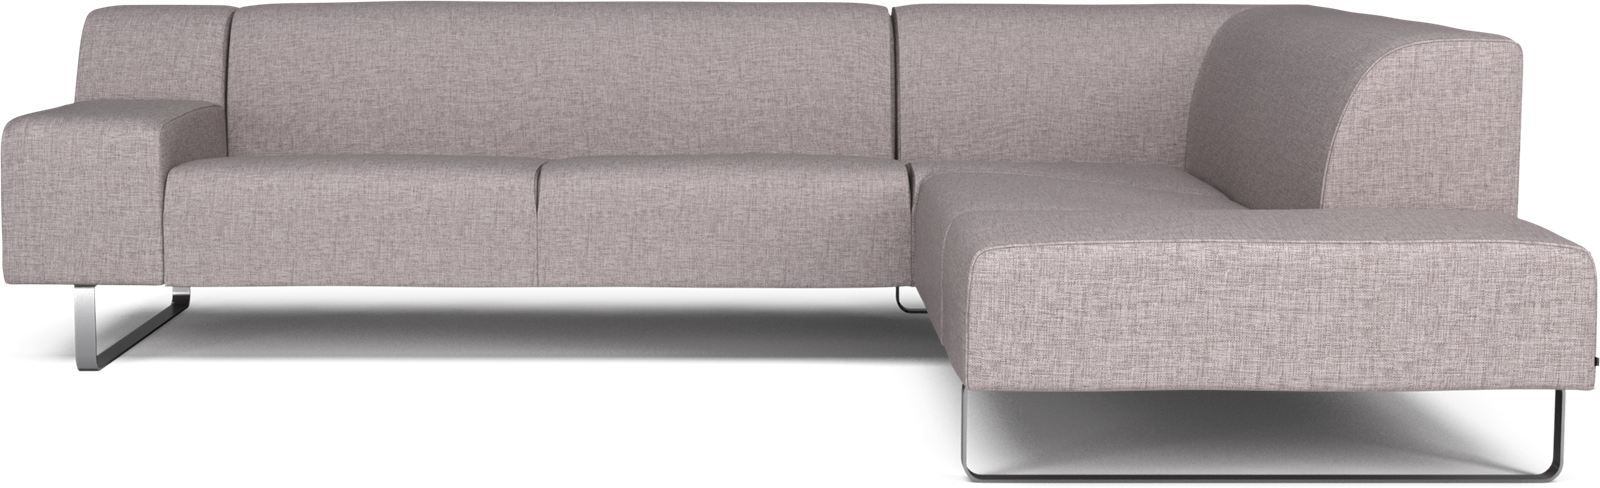 bolia outlet sofa rp dimensions seville 6 pers ecksofa m open end couch